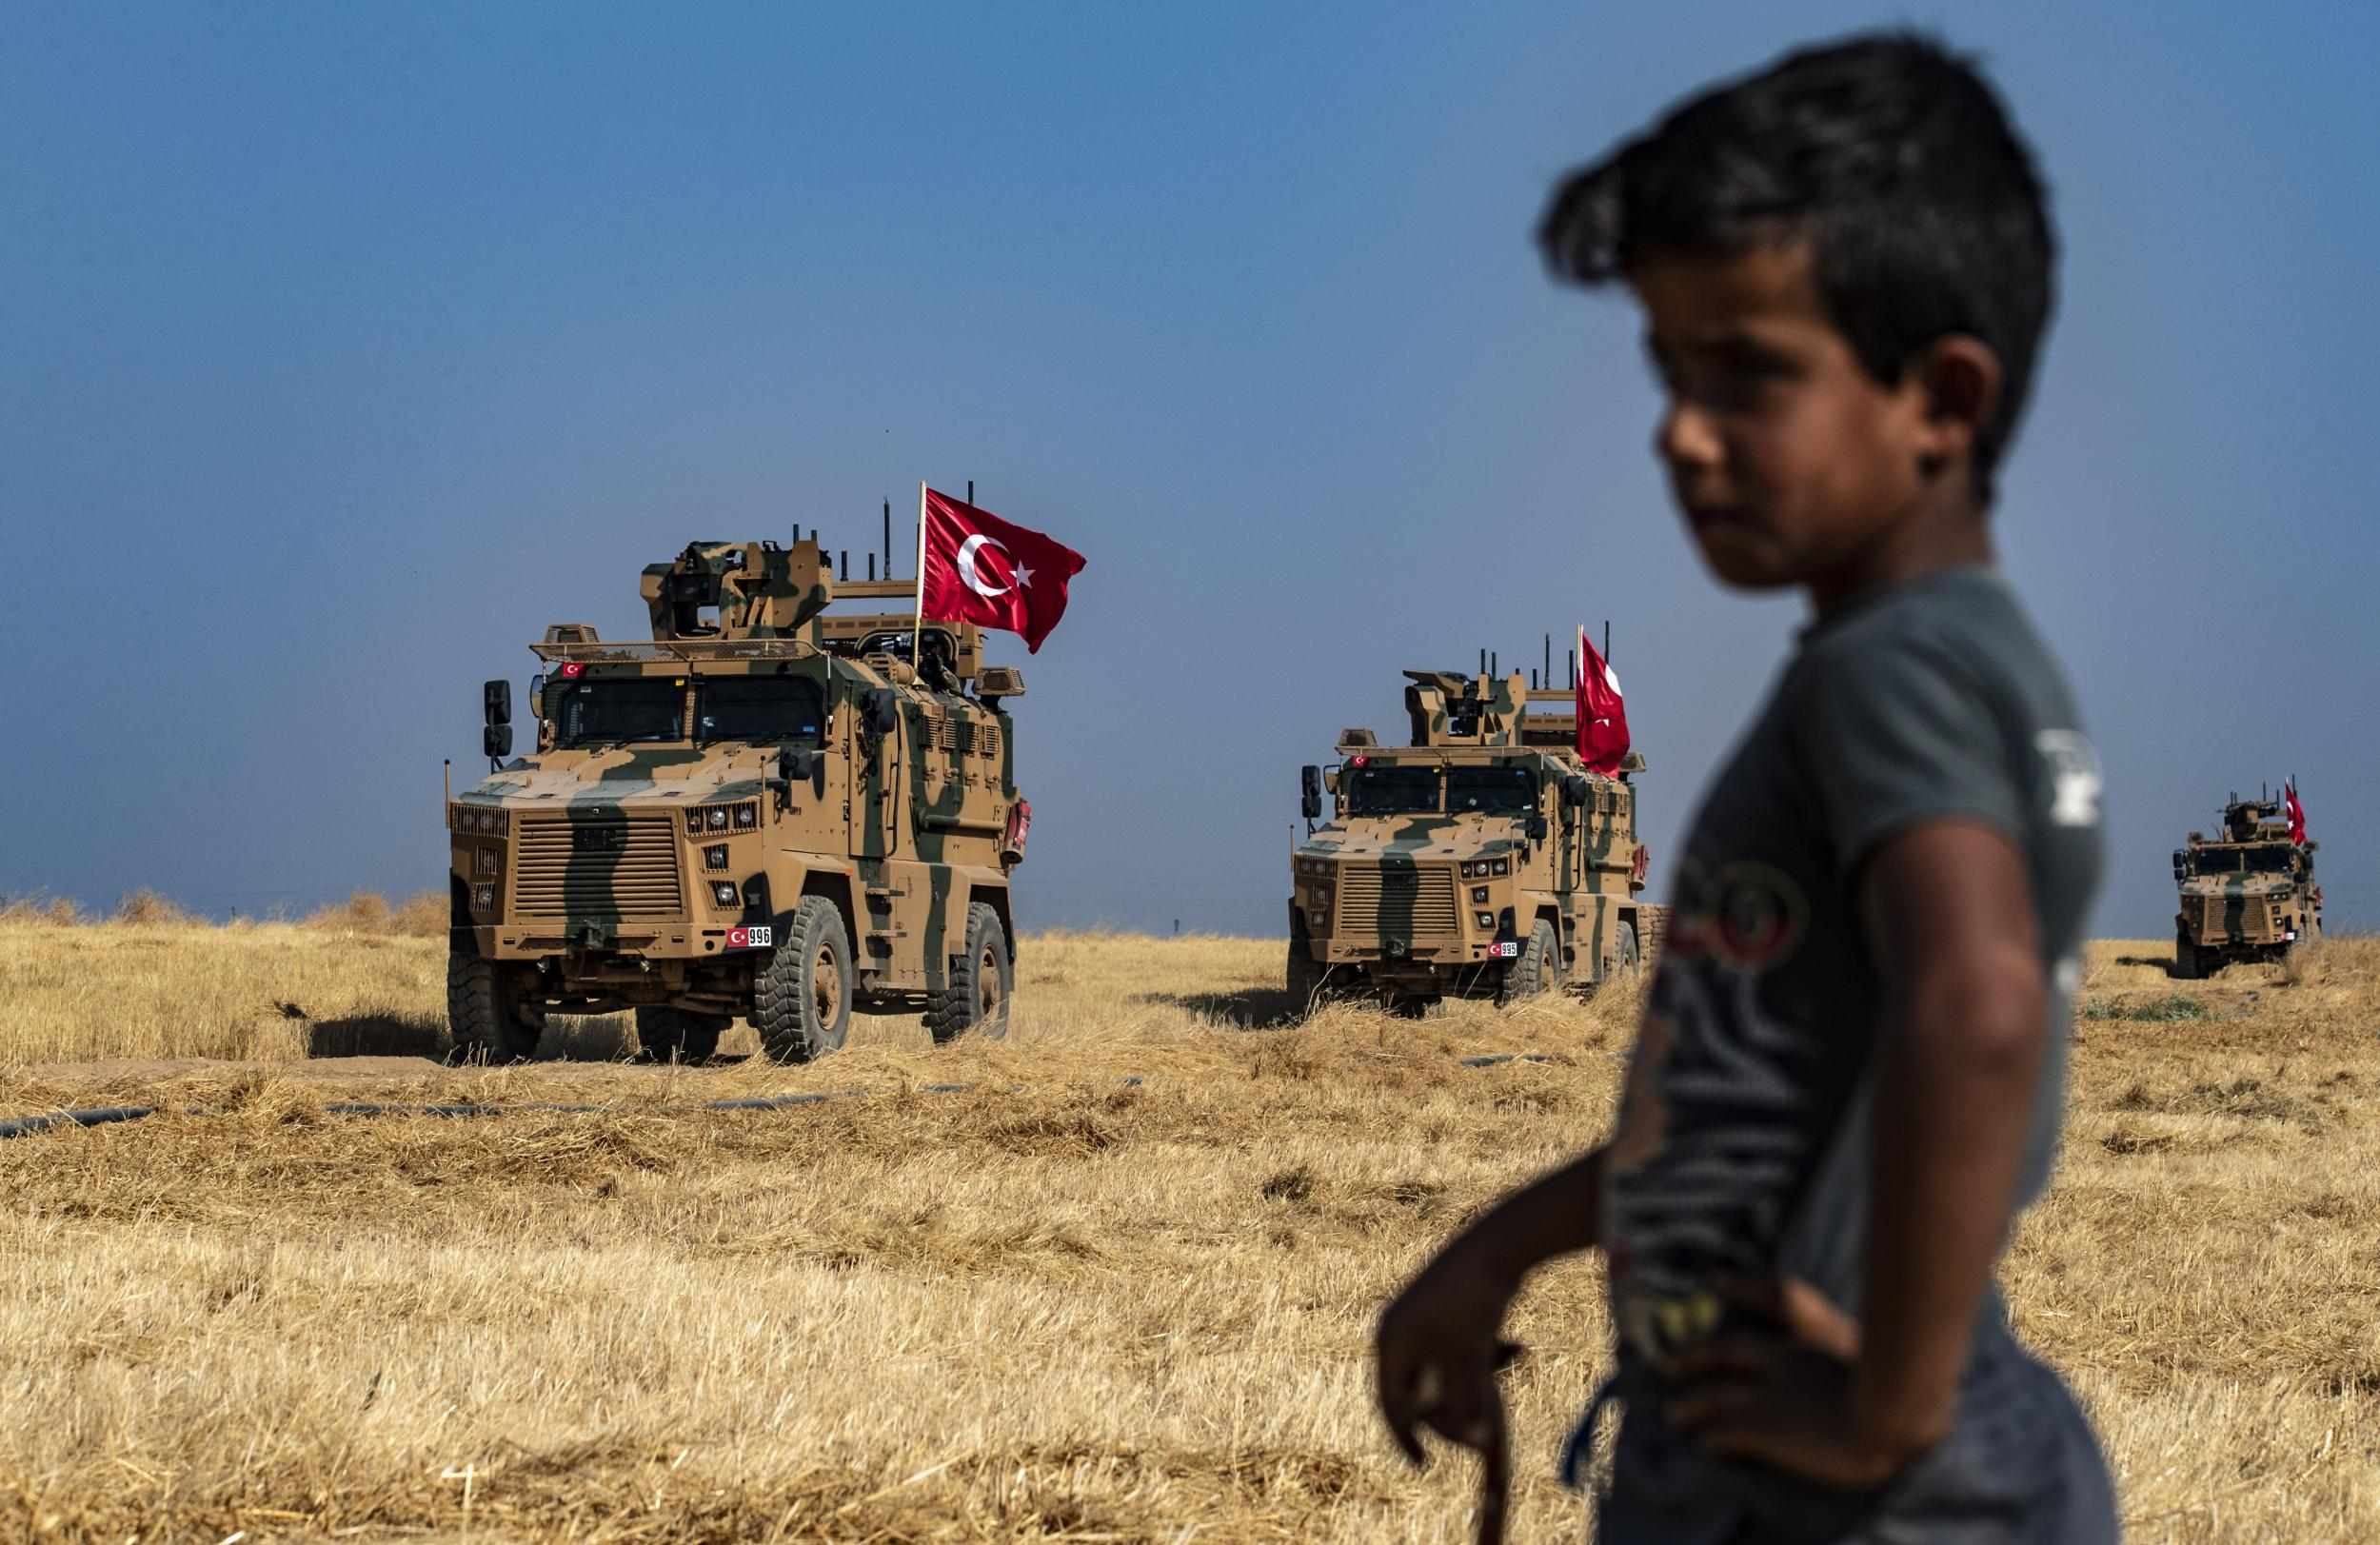 Why Turkey's invasion into Syria could spark a humanitarian catastrophe